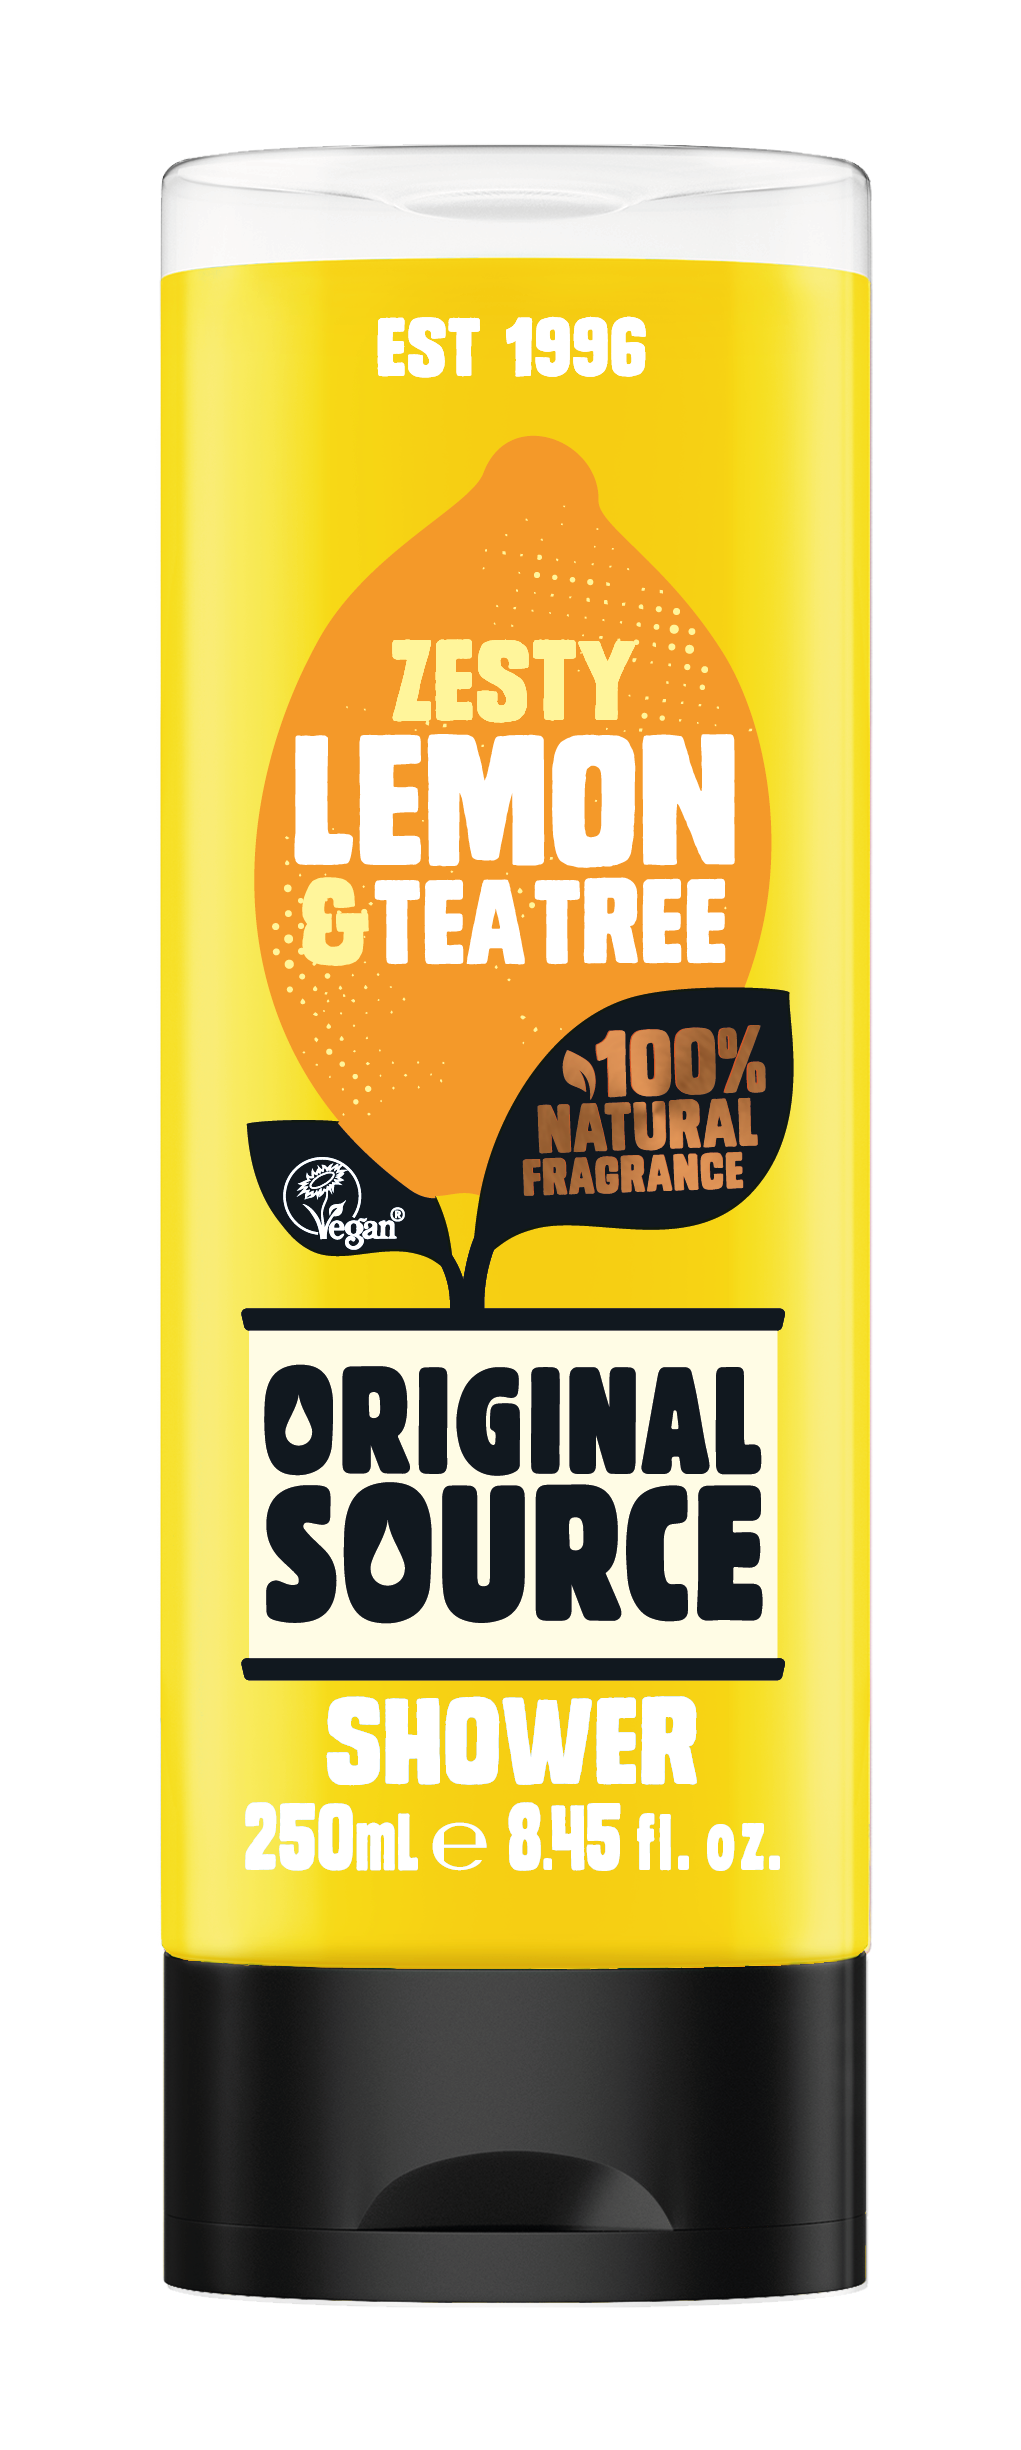 Original Source Lemon & Tea Tree